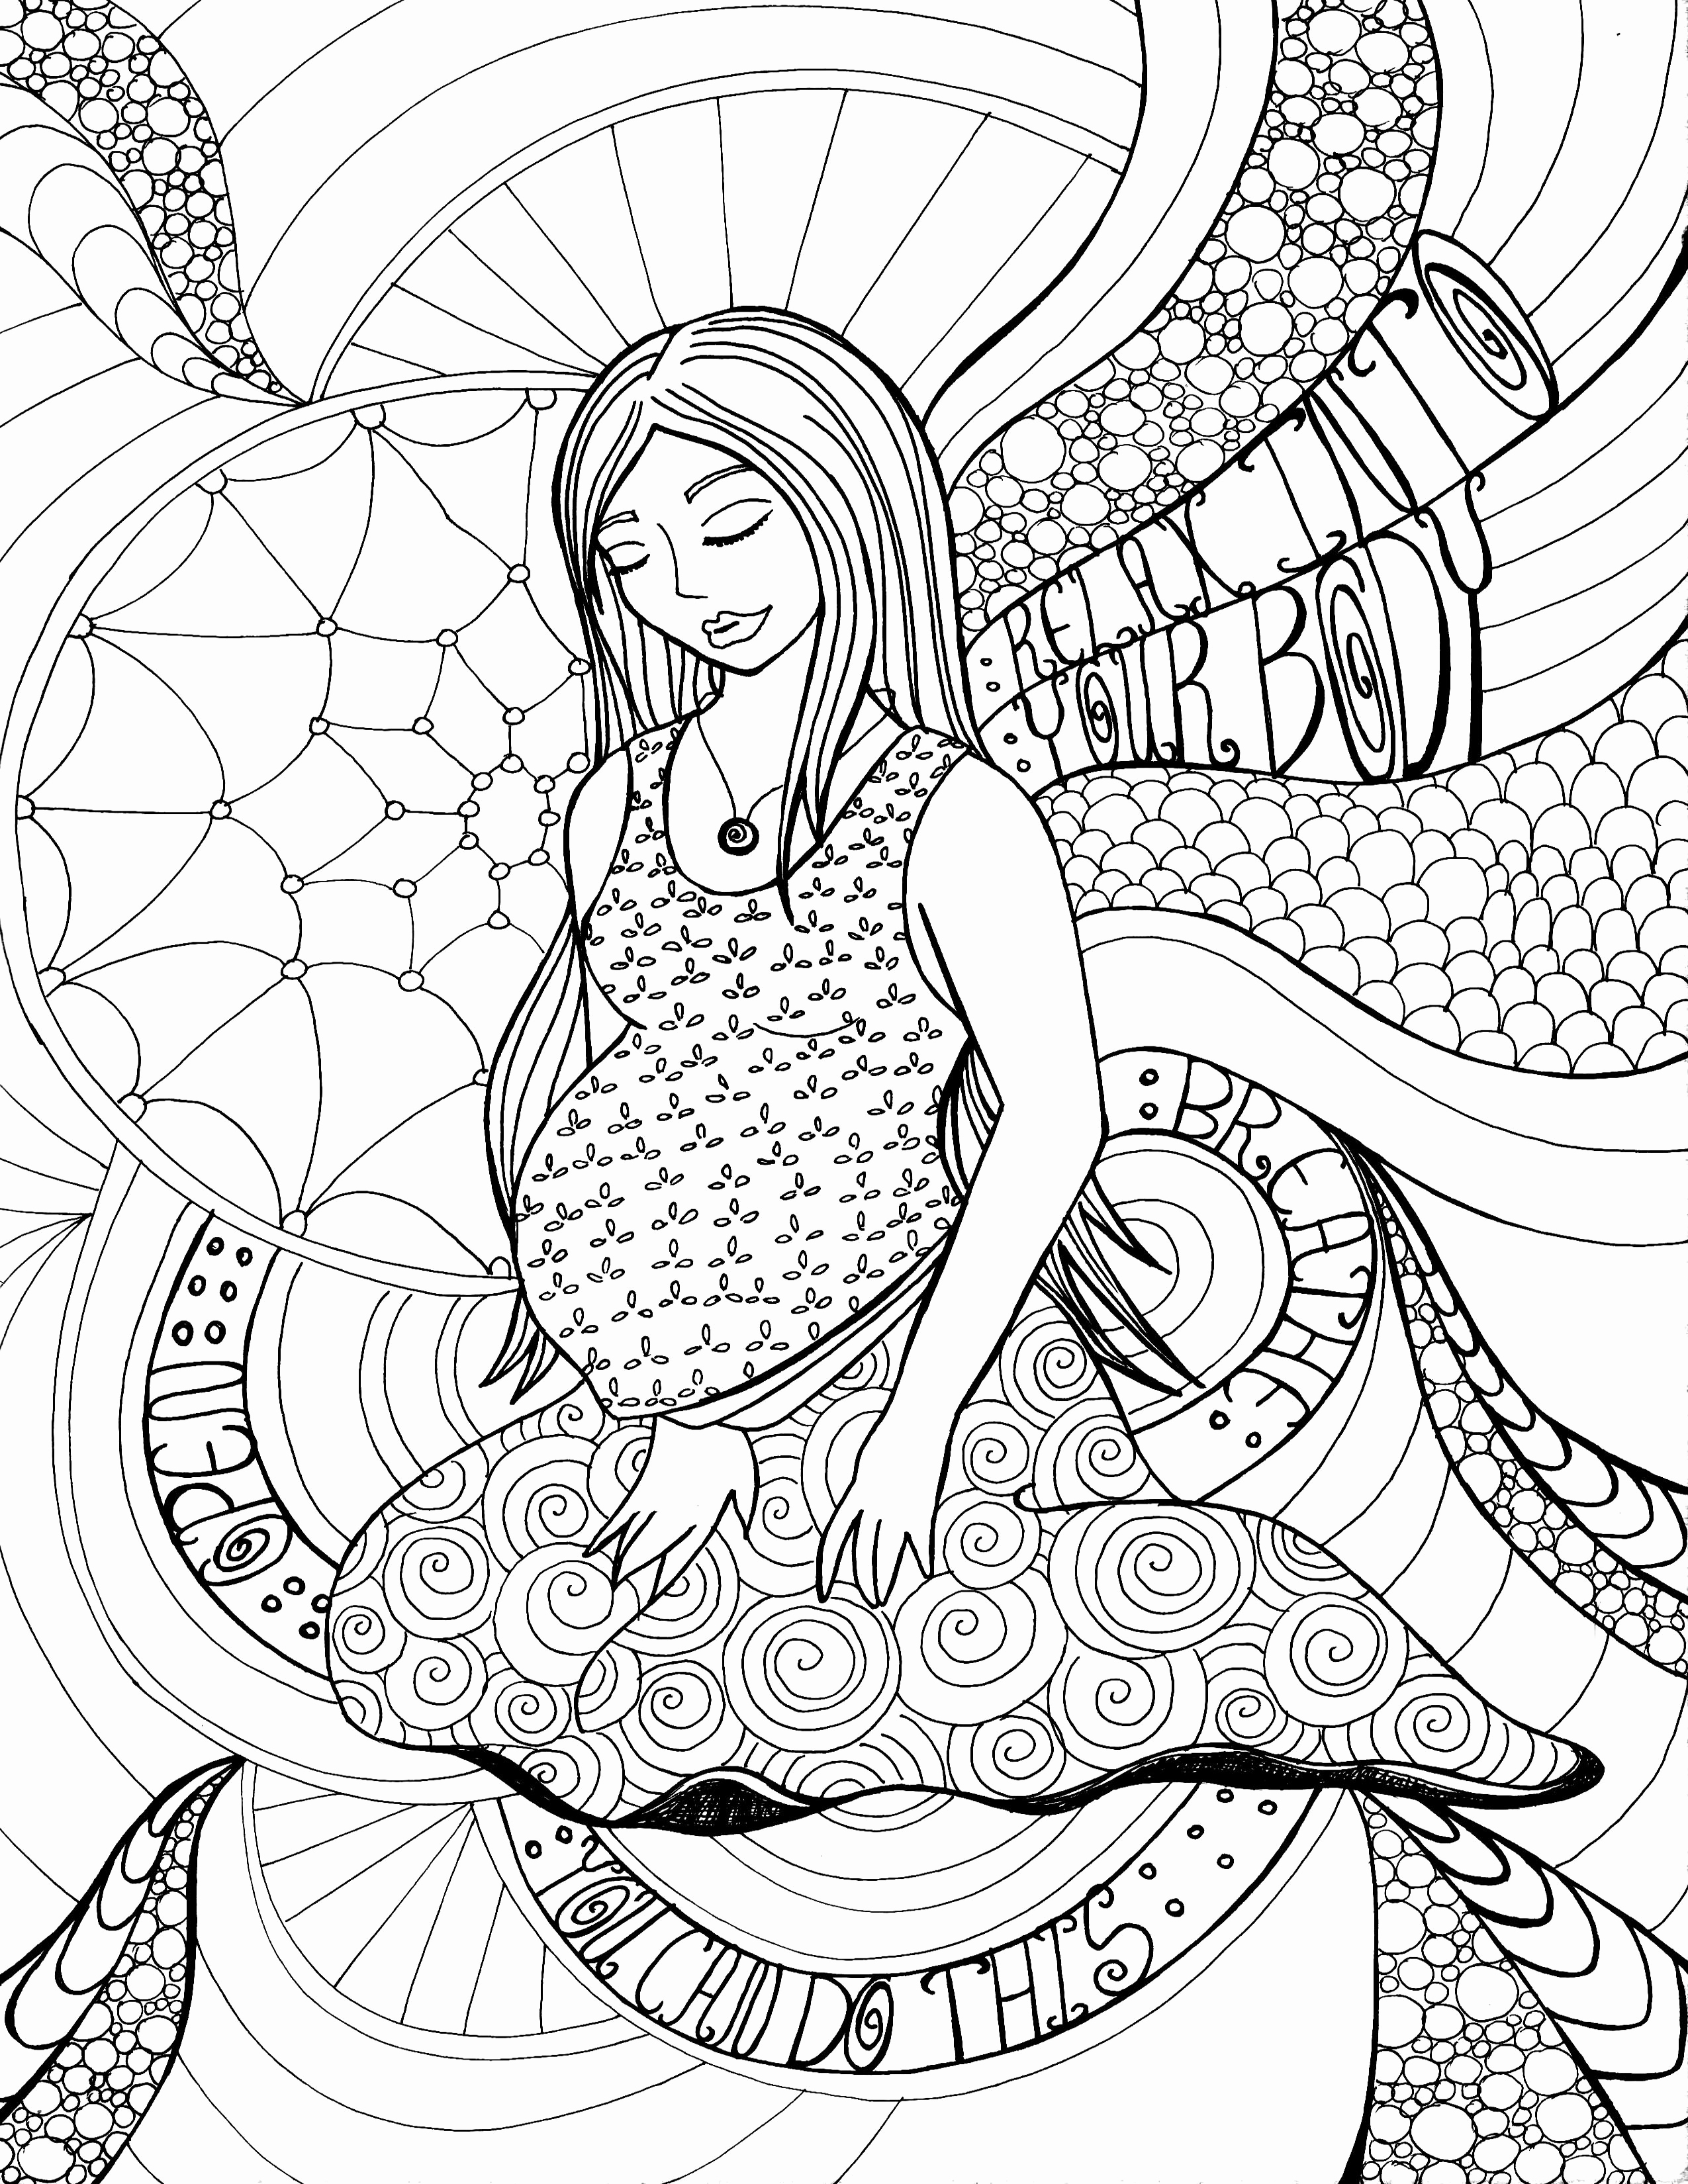 2550x3300 Crayola Giant Coloring Pages Best Of Coloring Pages Pregnant Woman